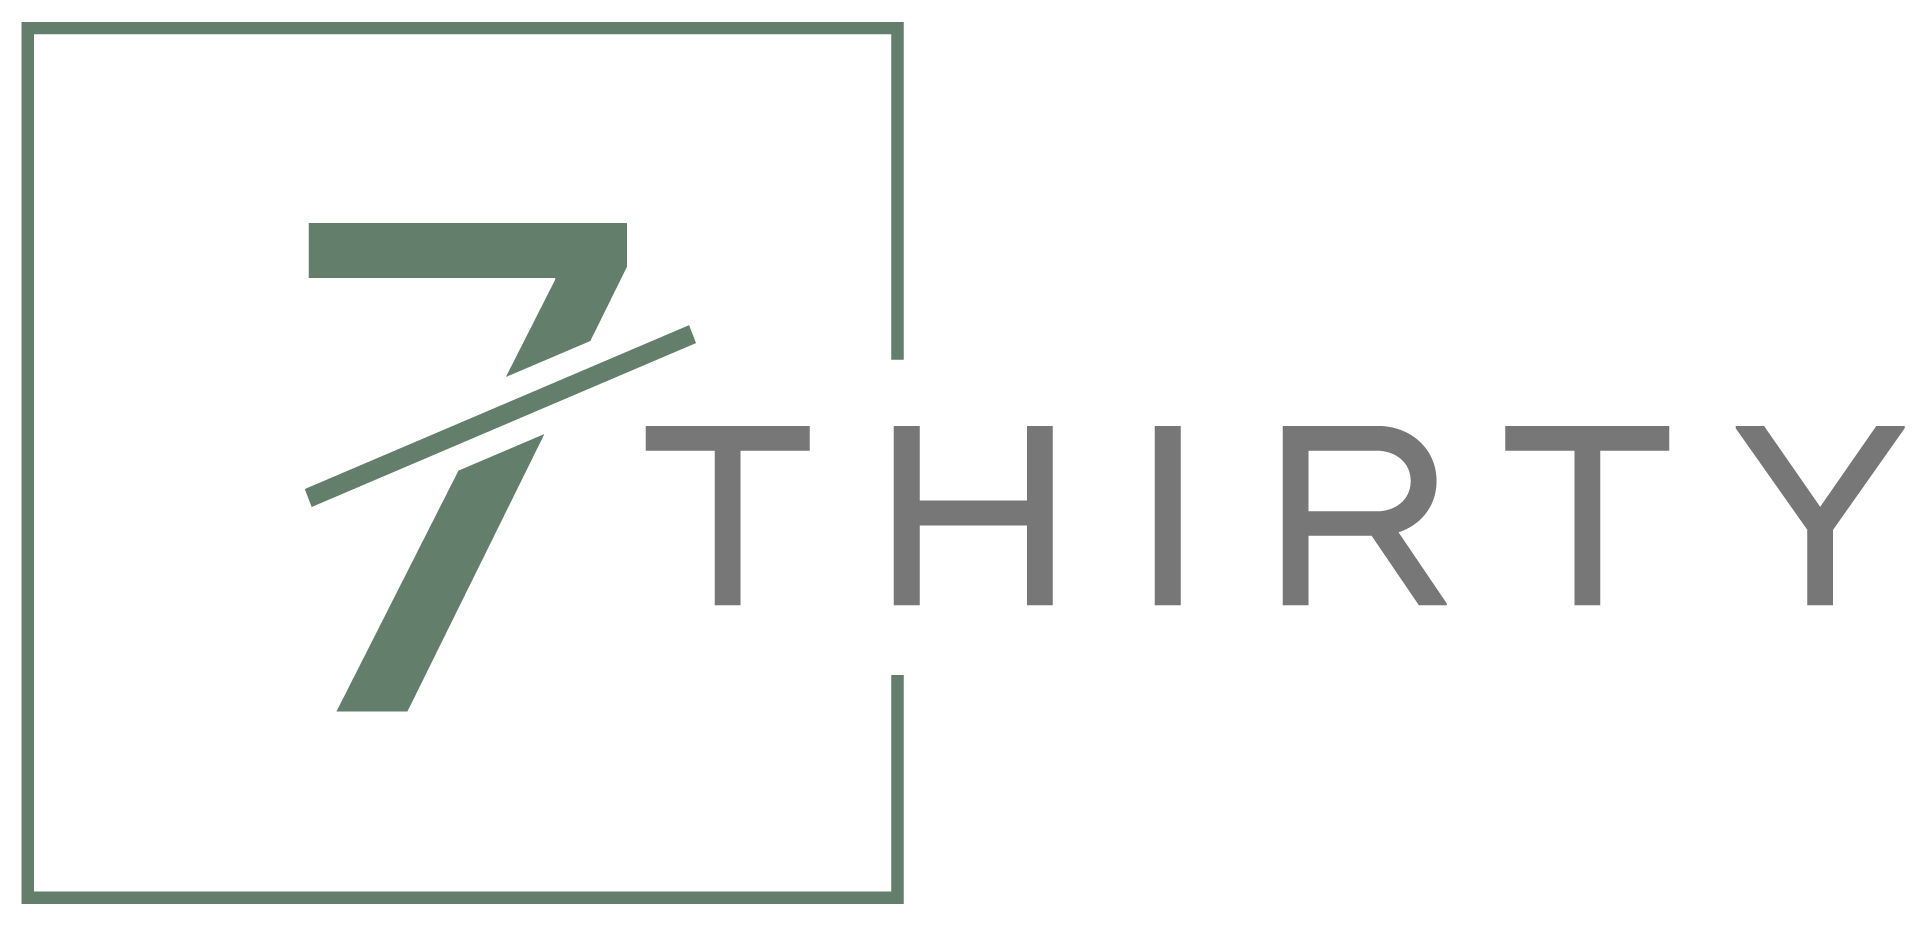 7thirty Capital Group